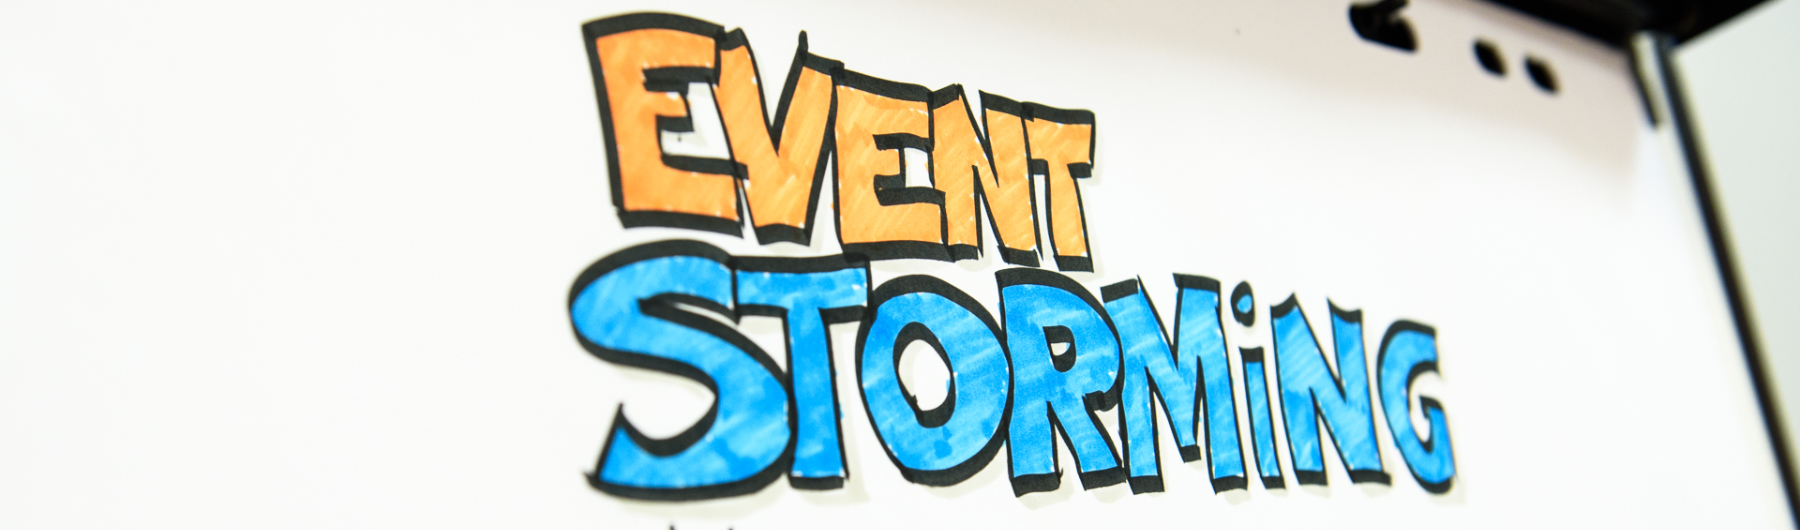 EventStorming Master Class with Alberto Brandolini